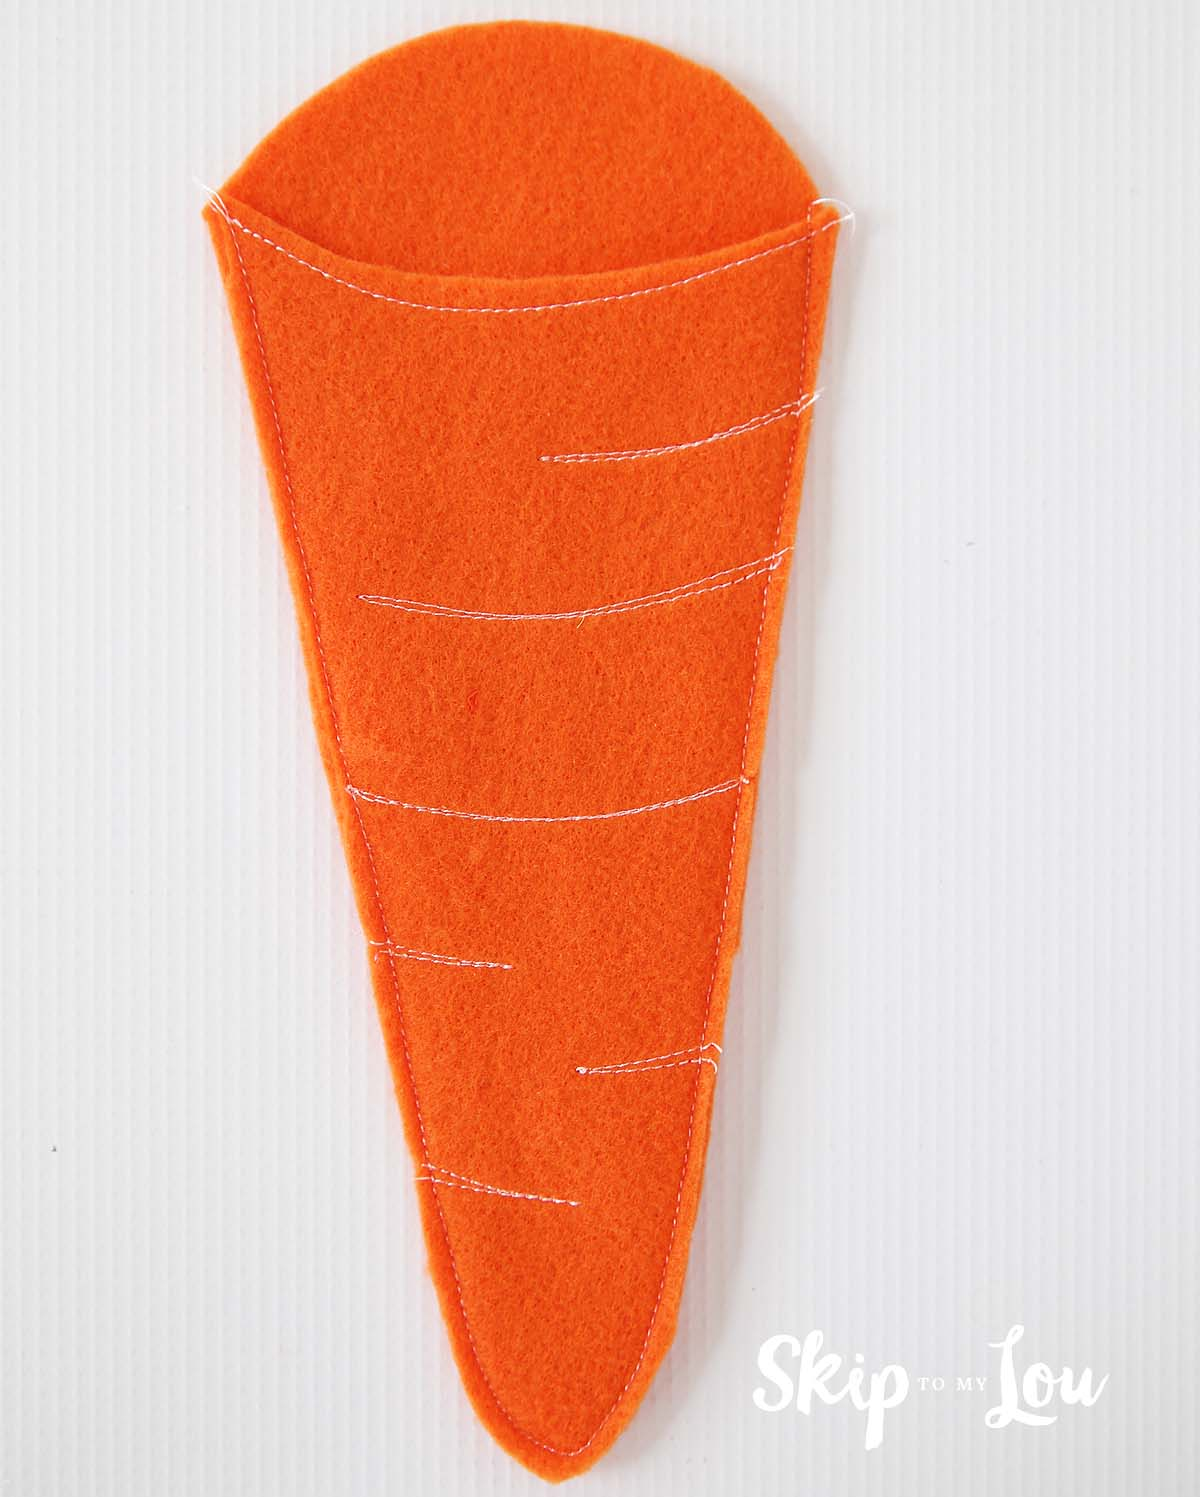 sewn felt carrot pencil holder